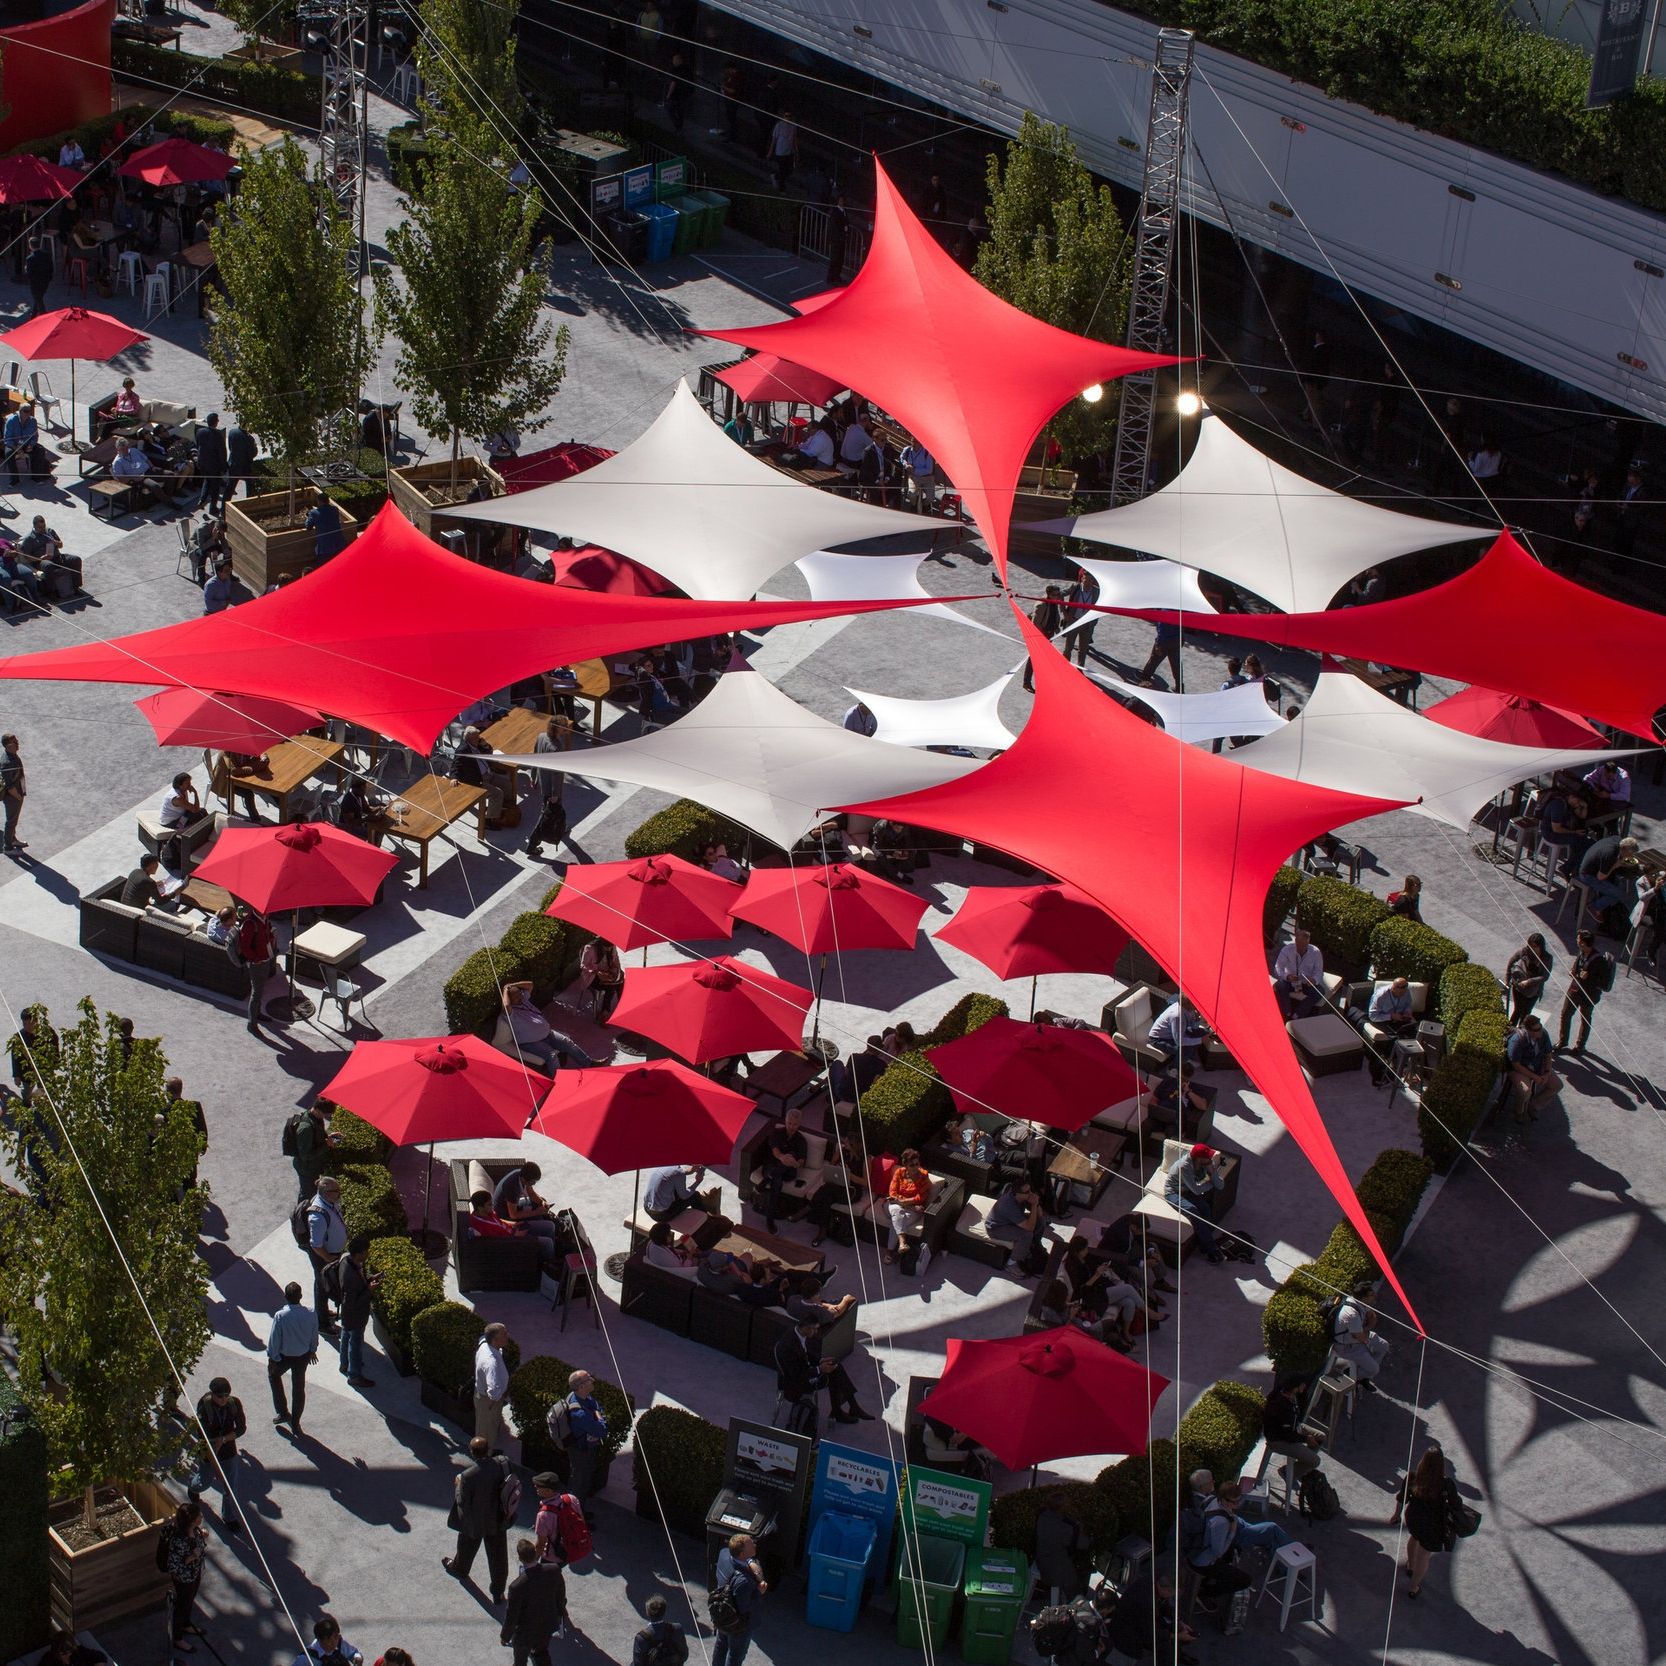 ORACLE: OPENWORLD 2017 - CLOUD PLAZA - ON HOWARD ST., AT THE MOSCONE CENTER IN SAN FRANCISCO